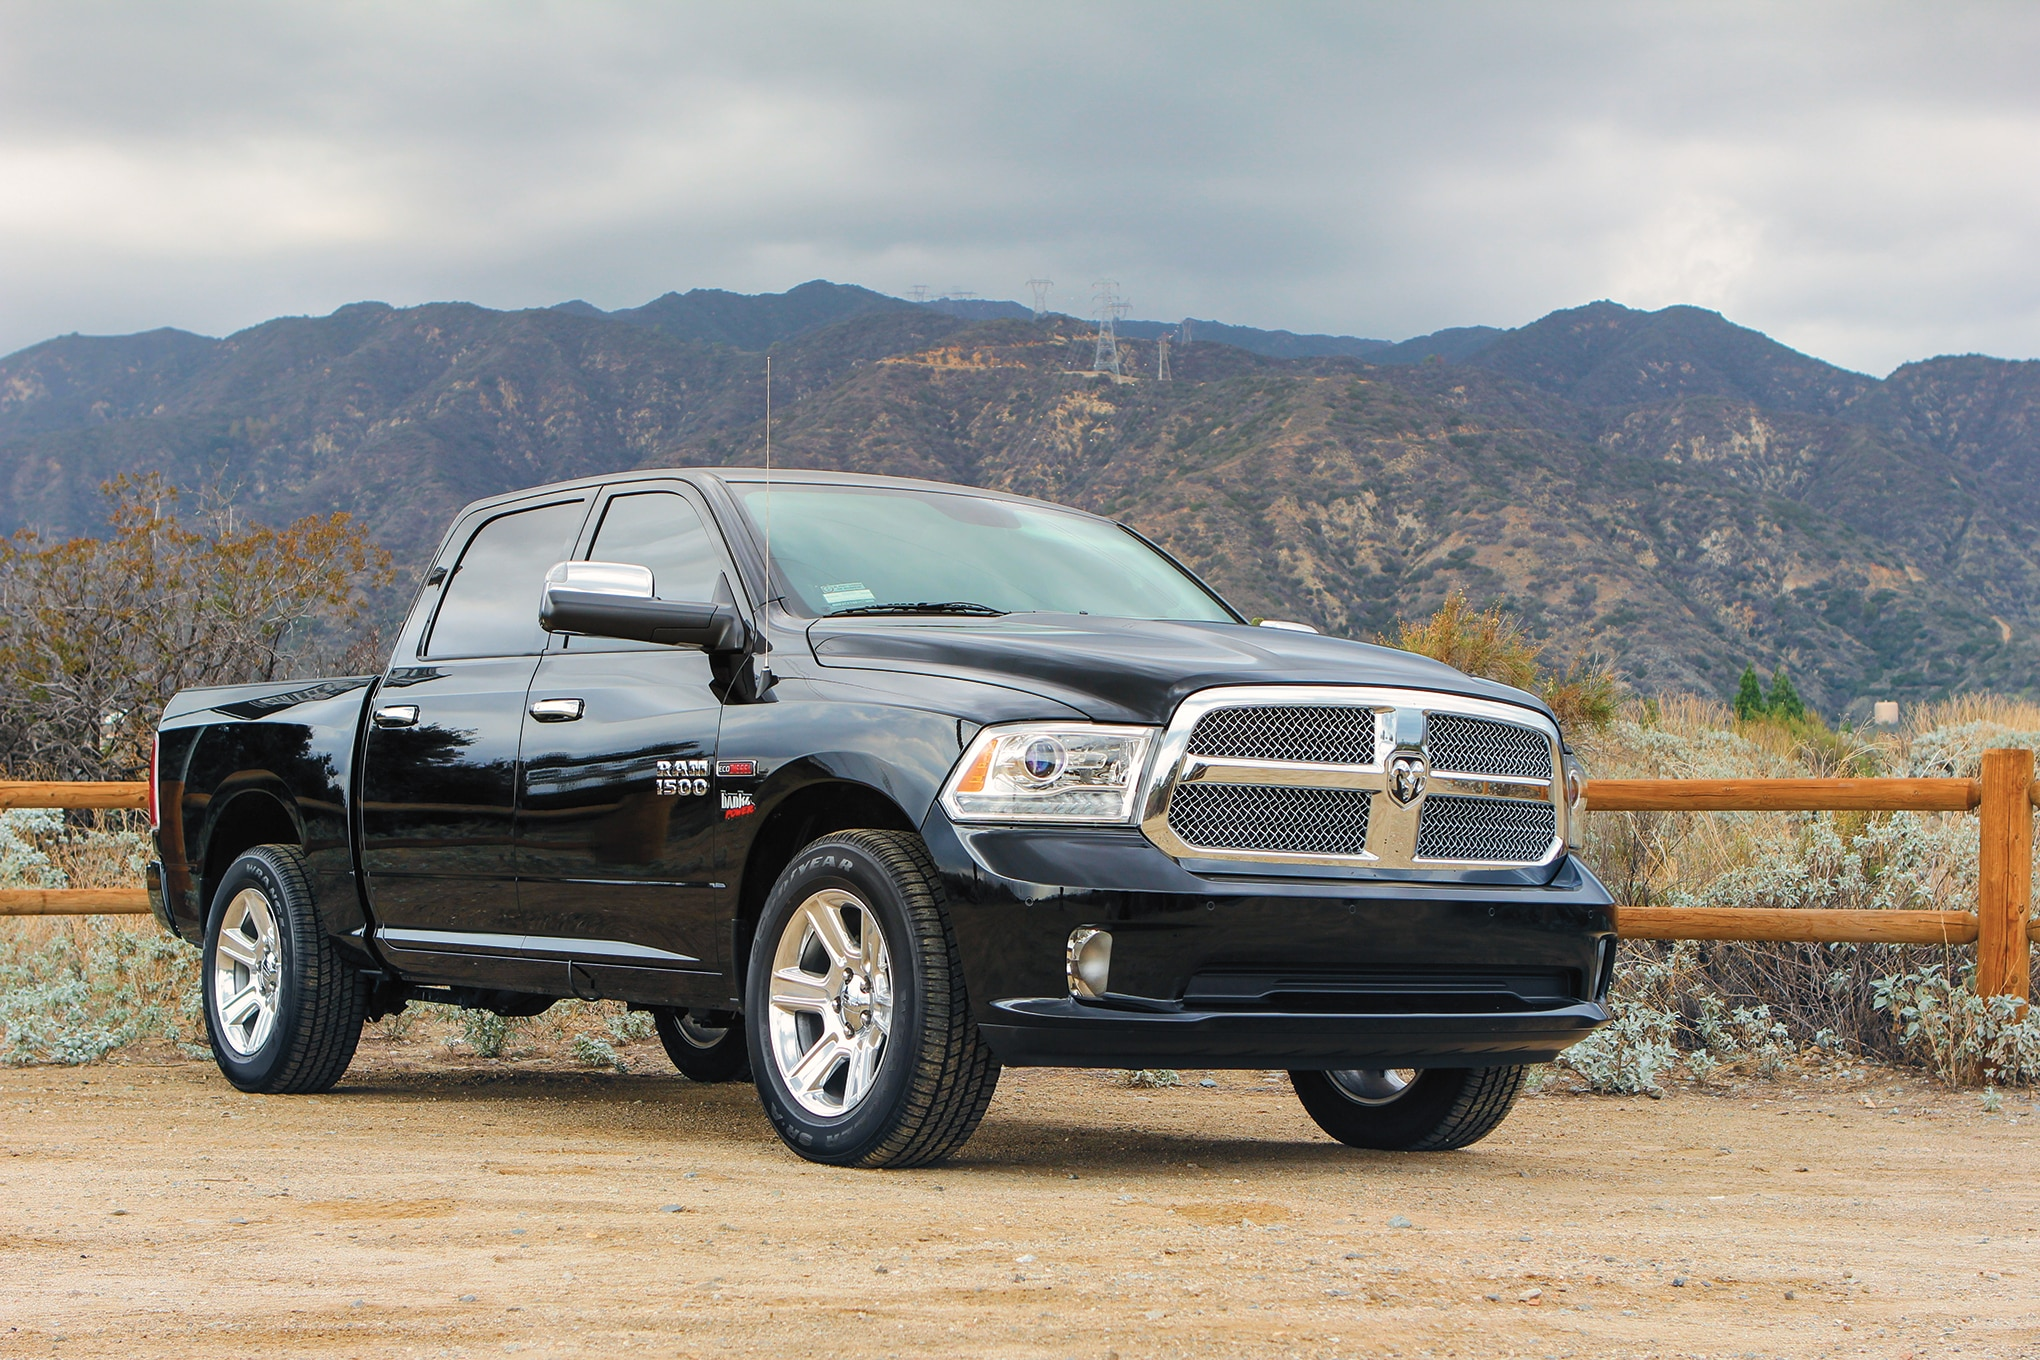 2018 Dodge Ram 2500 Redesign And Price together with Camio a Ram Diesel 2016 additionally 2019 Dodge Ramcharger besides 2019 Mercedes Gle Coupe Review Specs And Release Date furthermore Toyota Fortuner 2018 Model Picture. on dodge dakota release date